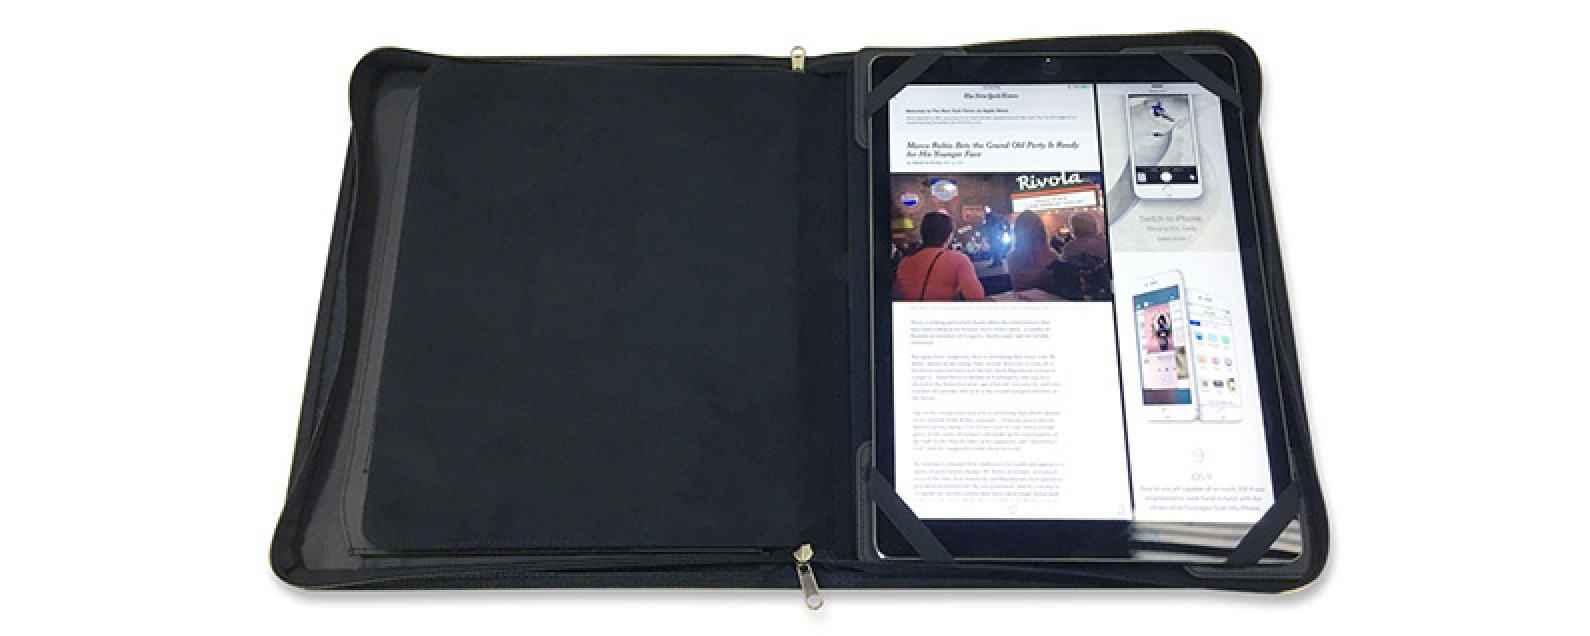 Review: Leather Portfolio Integrates iPad for Business in the Tech Era